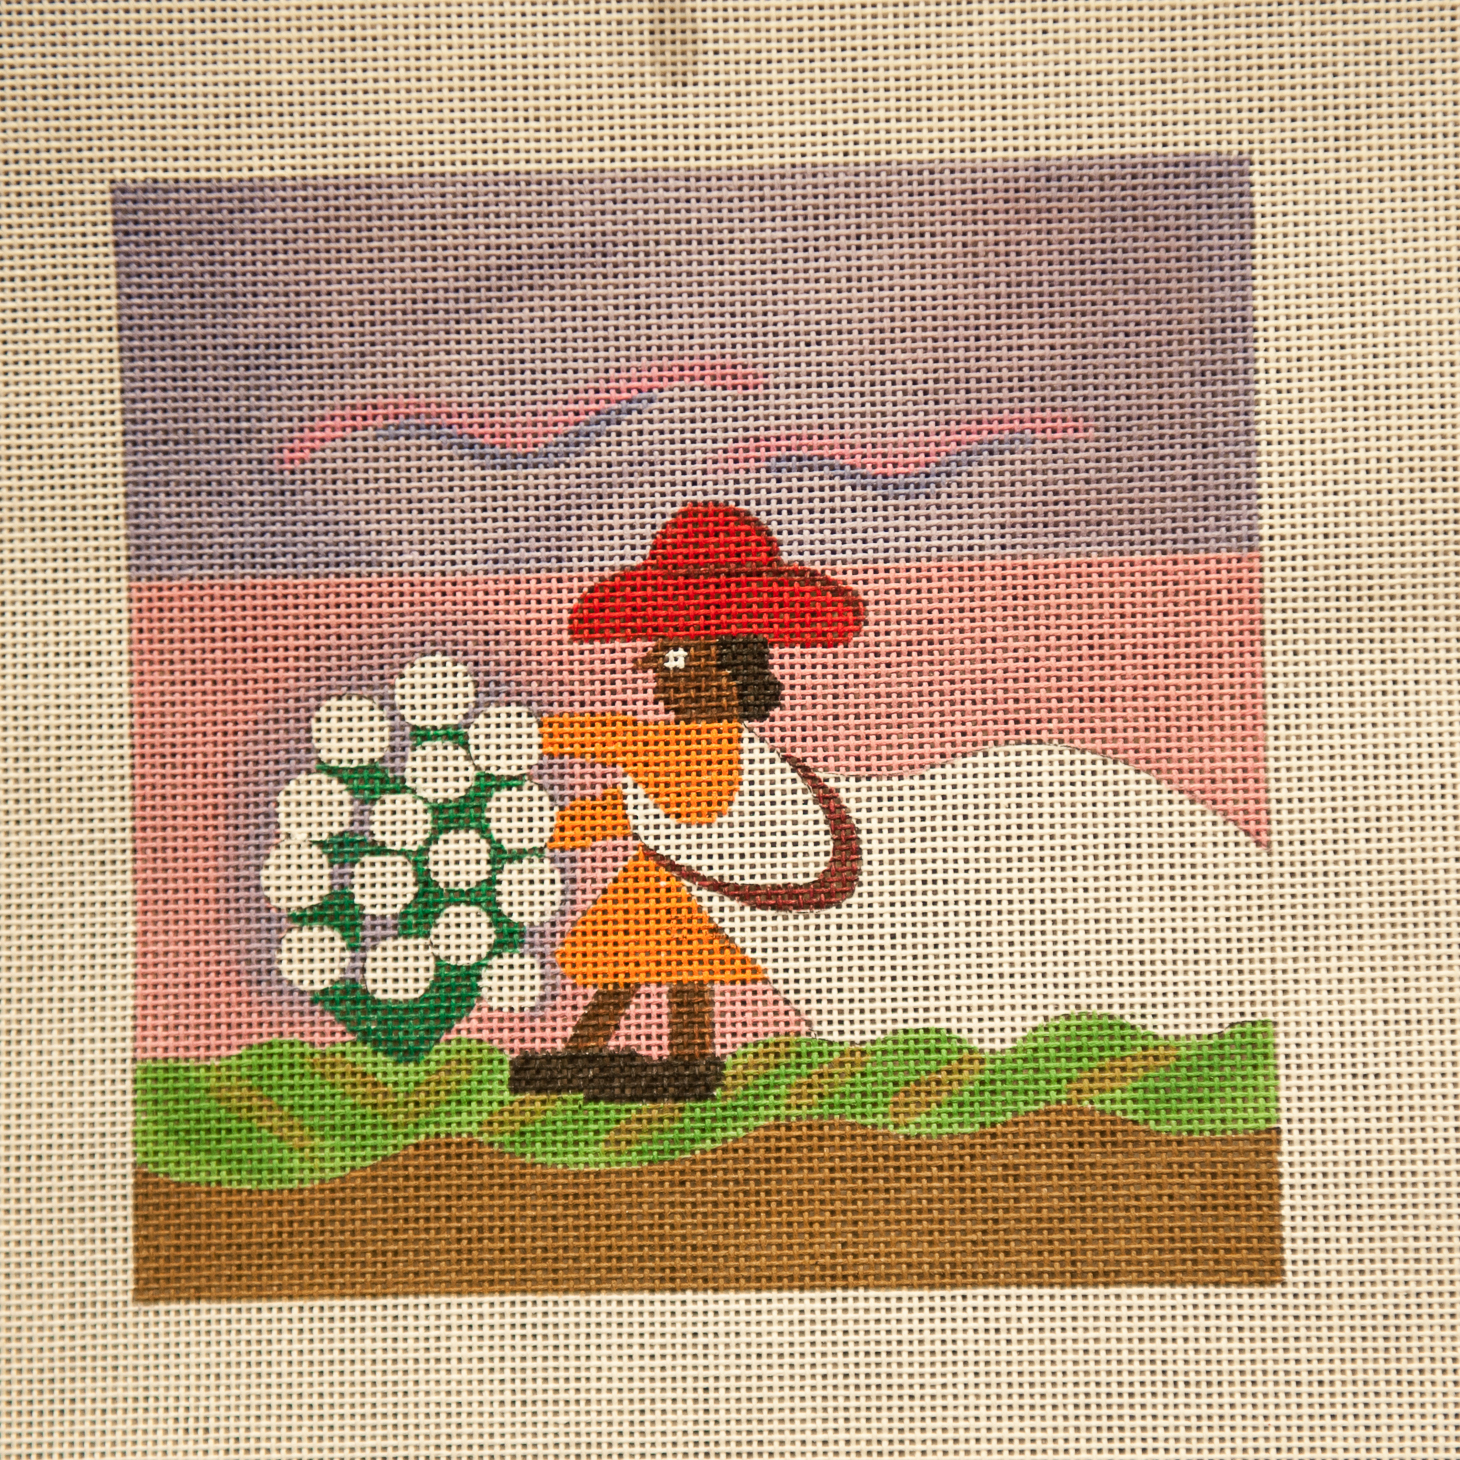 Picking Cotton (small)